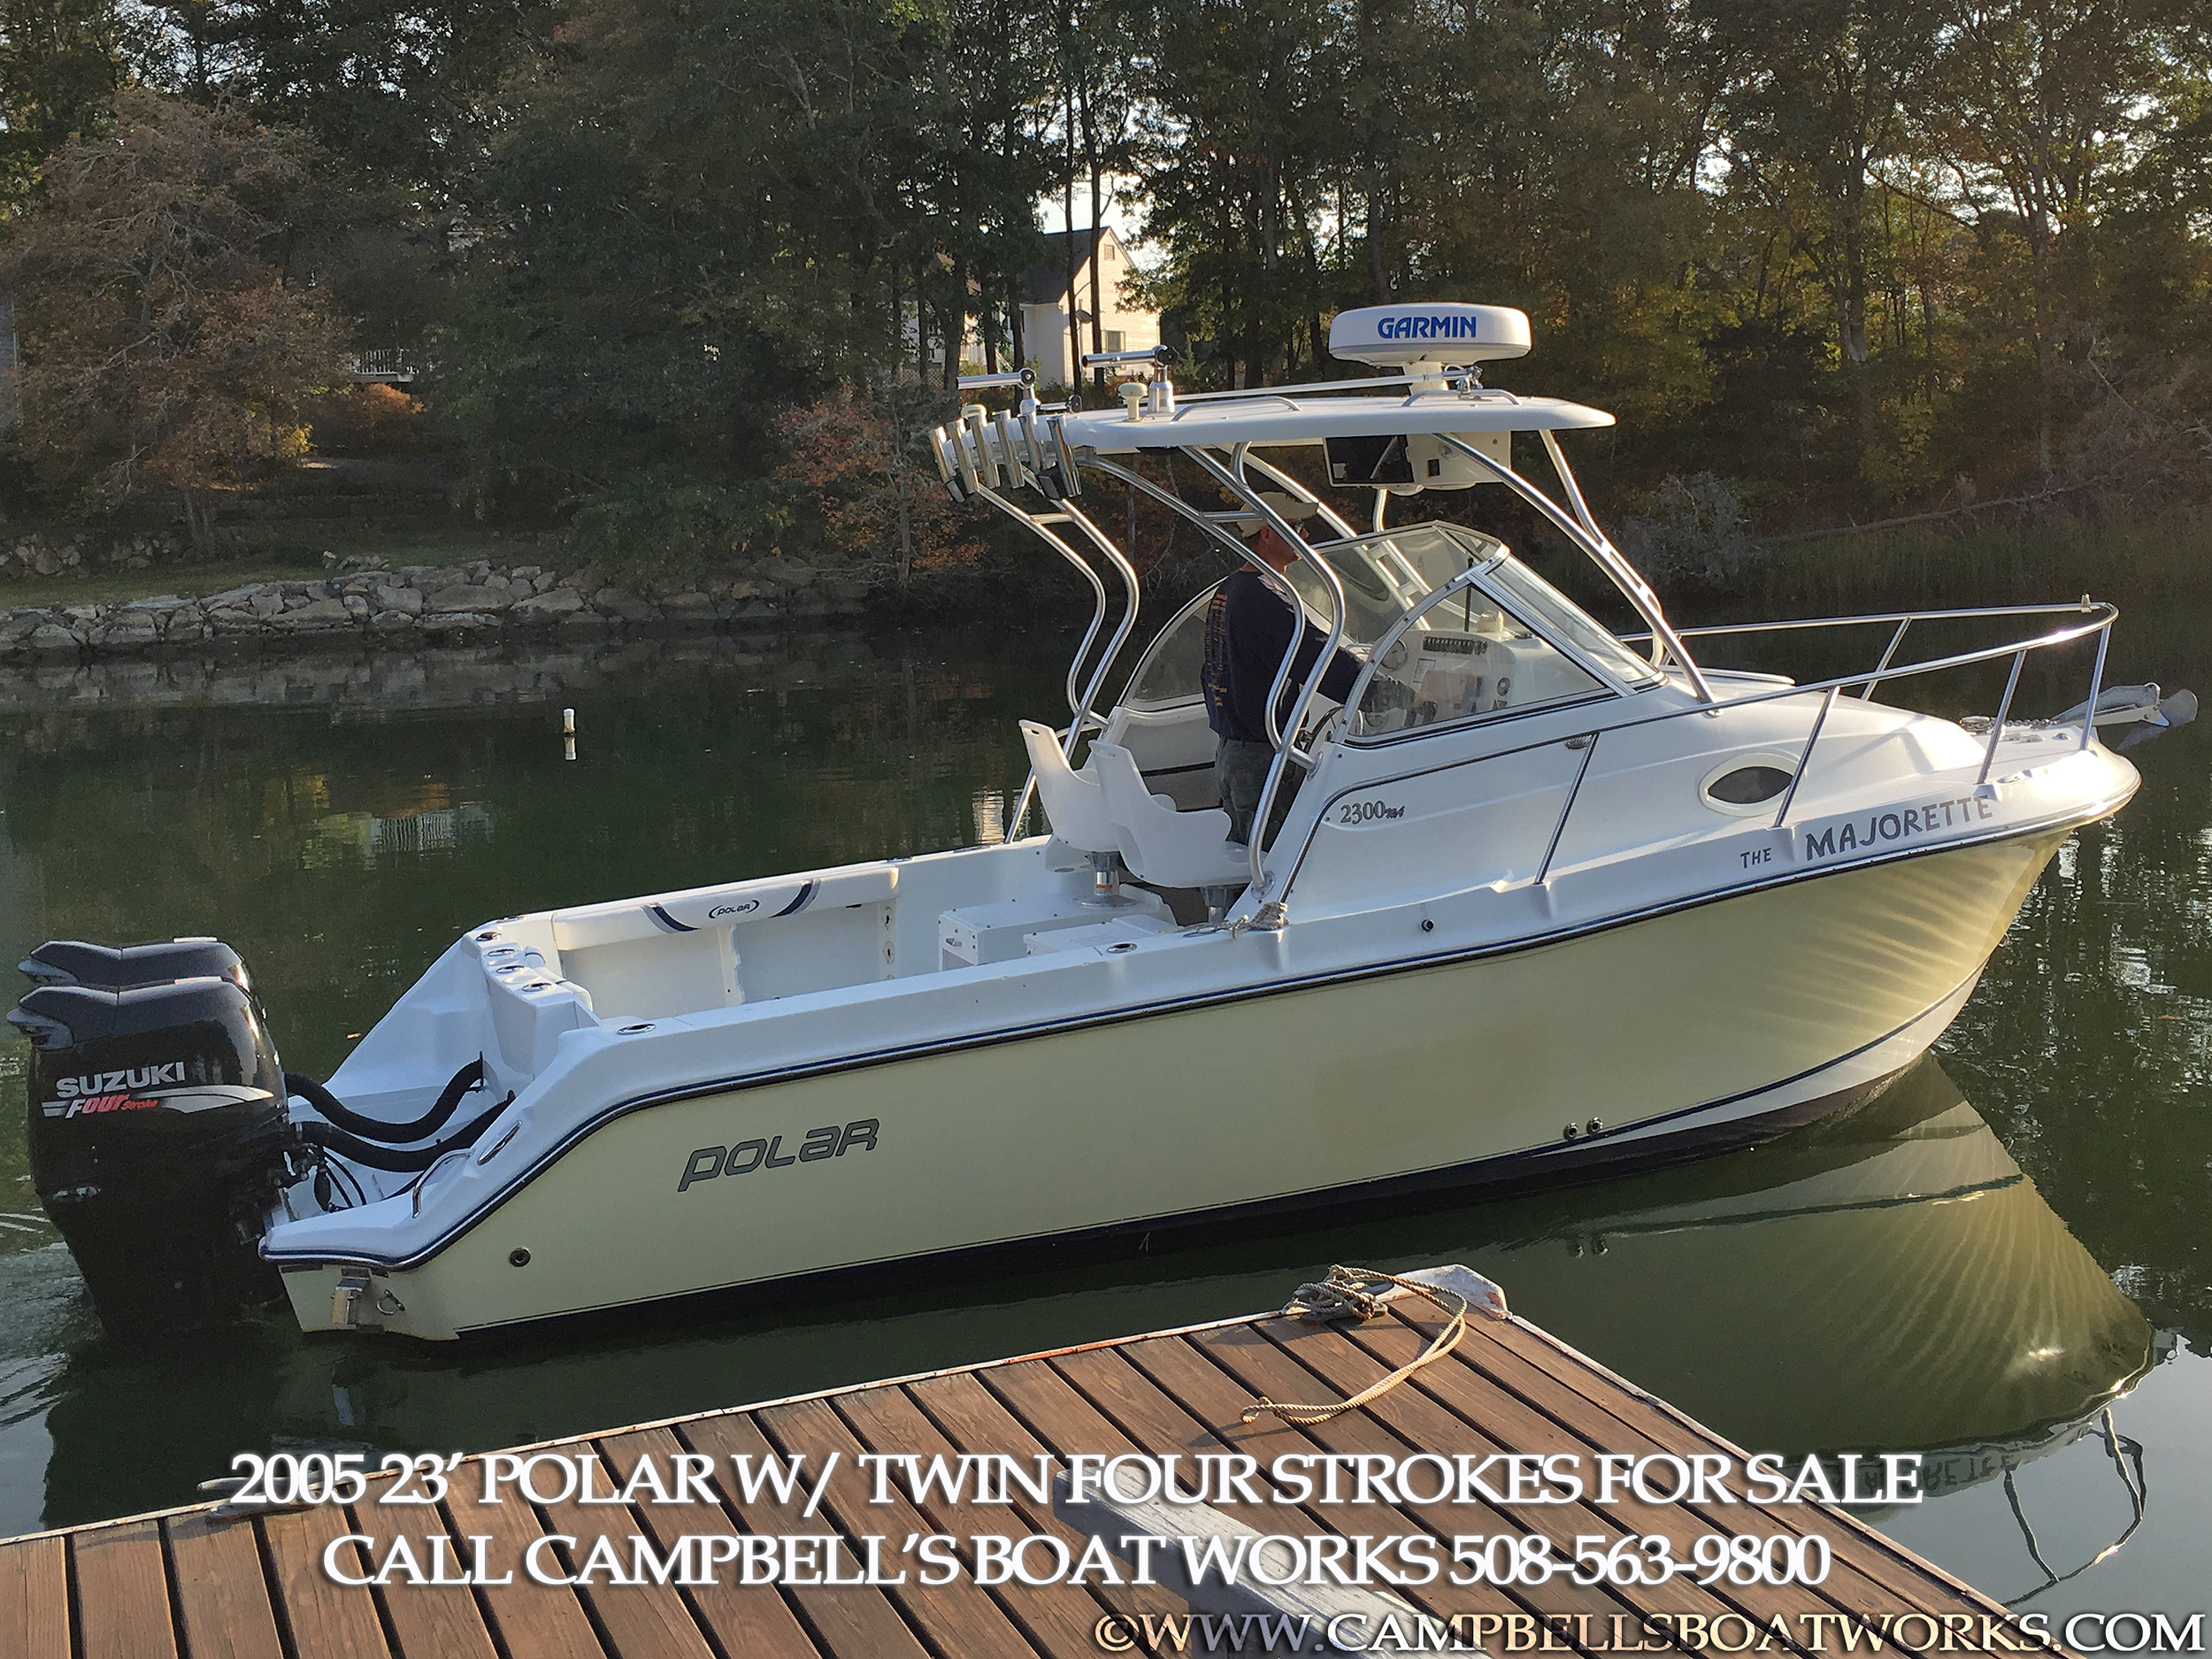 23-polar-boat-four-stroke-outboards-for-sale.png